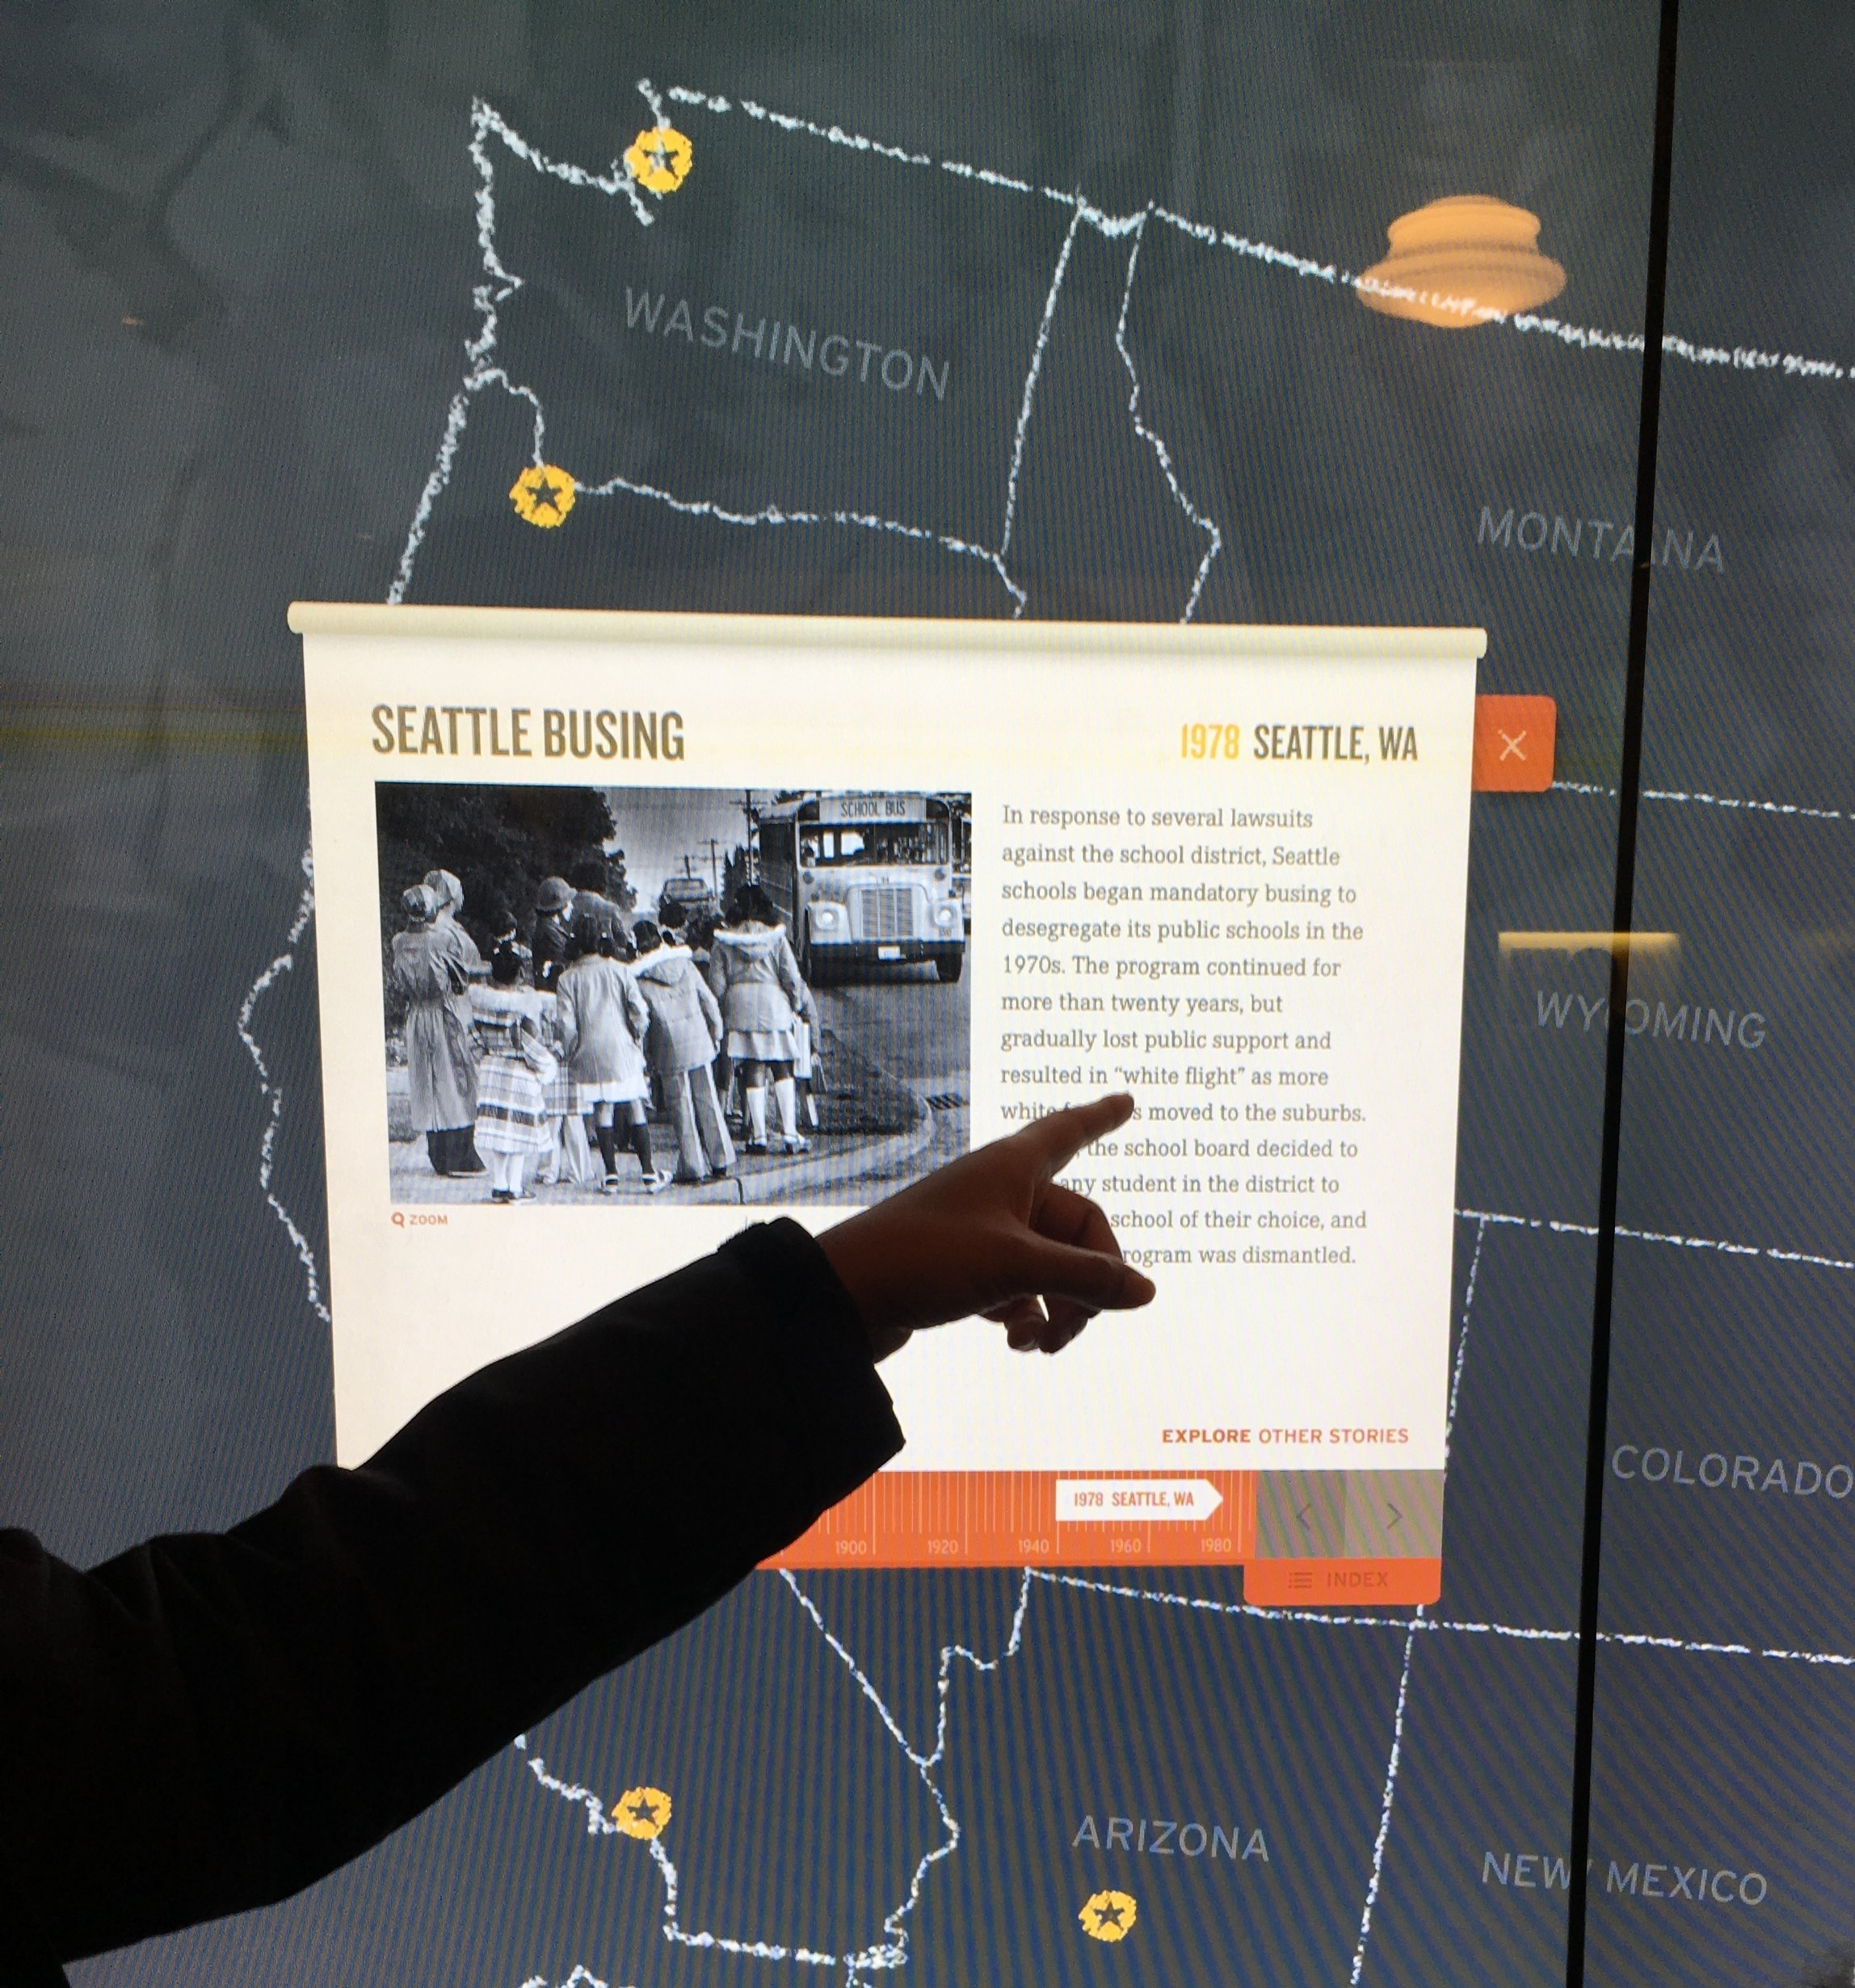 Seattle Busing Civil Rights Museum